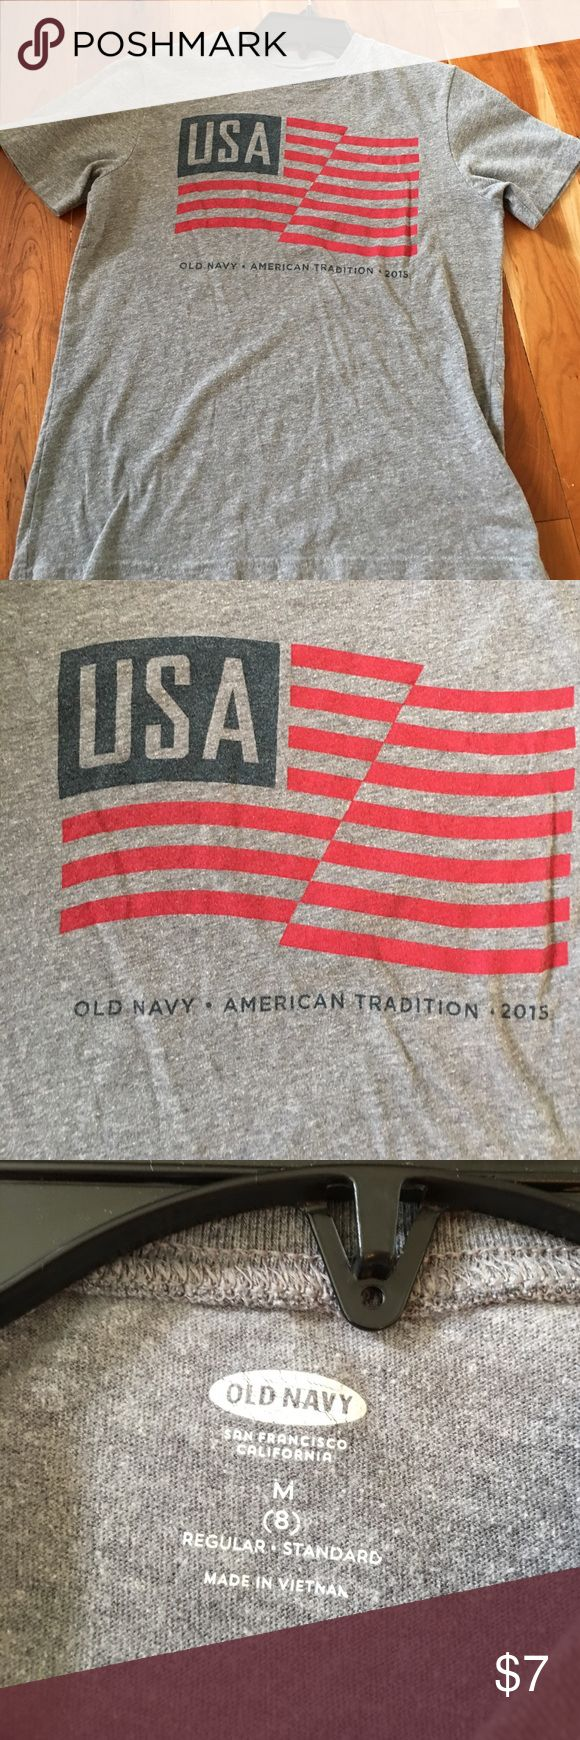 Boys tee Boys Americana gray tee with flag & USA on front.  Shirt is in MINT condition.  Wear with shorts & keeps or flip flops!  Super soft & comfy tee.  Shirt from Old Navy.  Great condition, no tears, rips, holes.  Boys size M/8. $7 Old Navy Shirts & Tops Tees - Short Sleeve